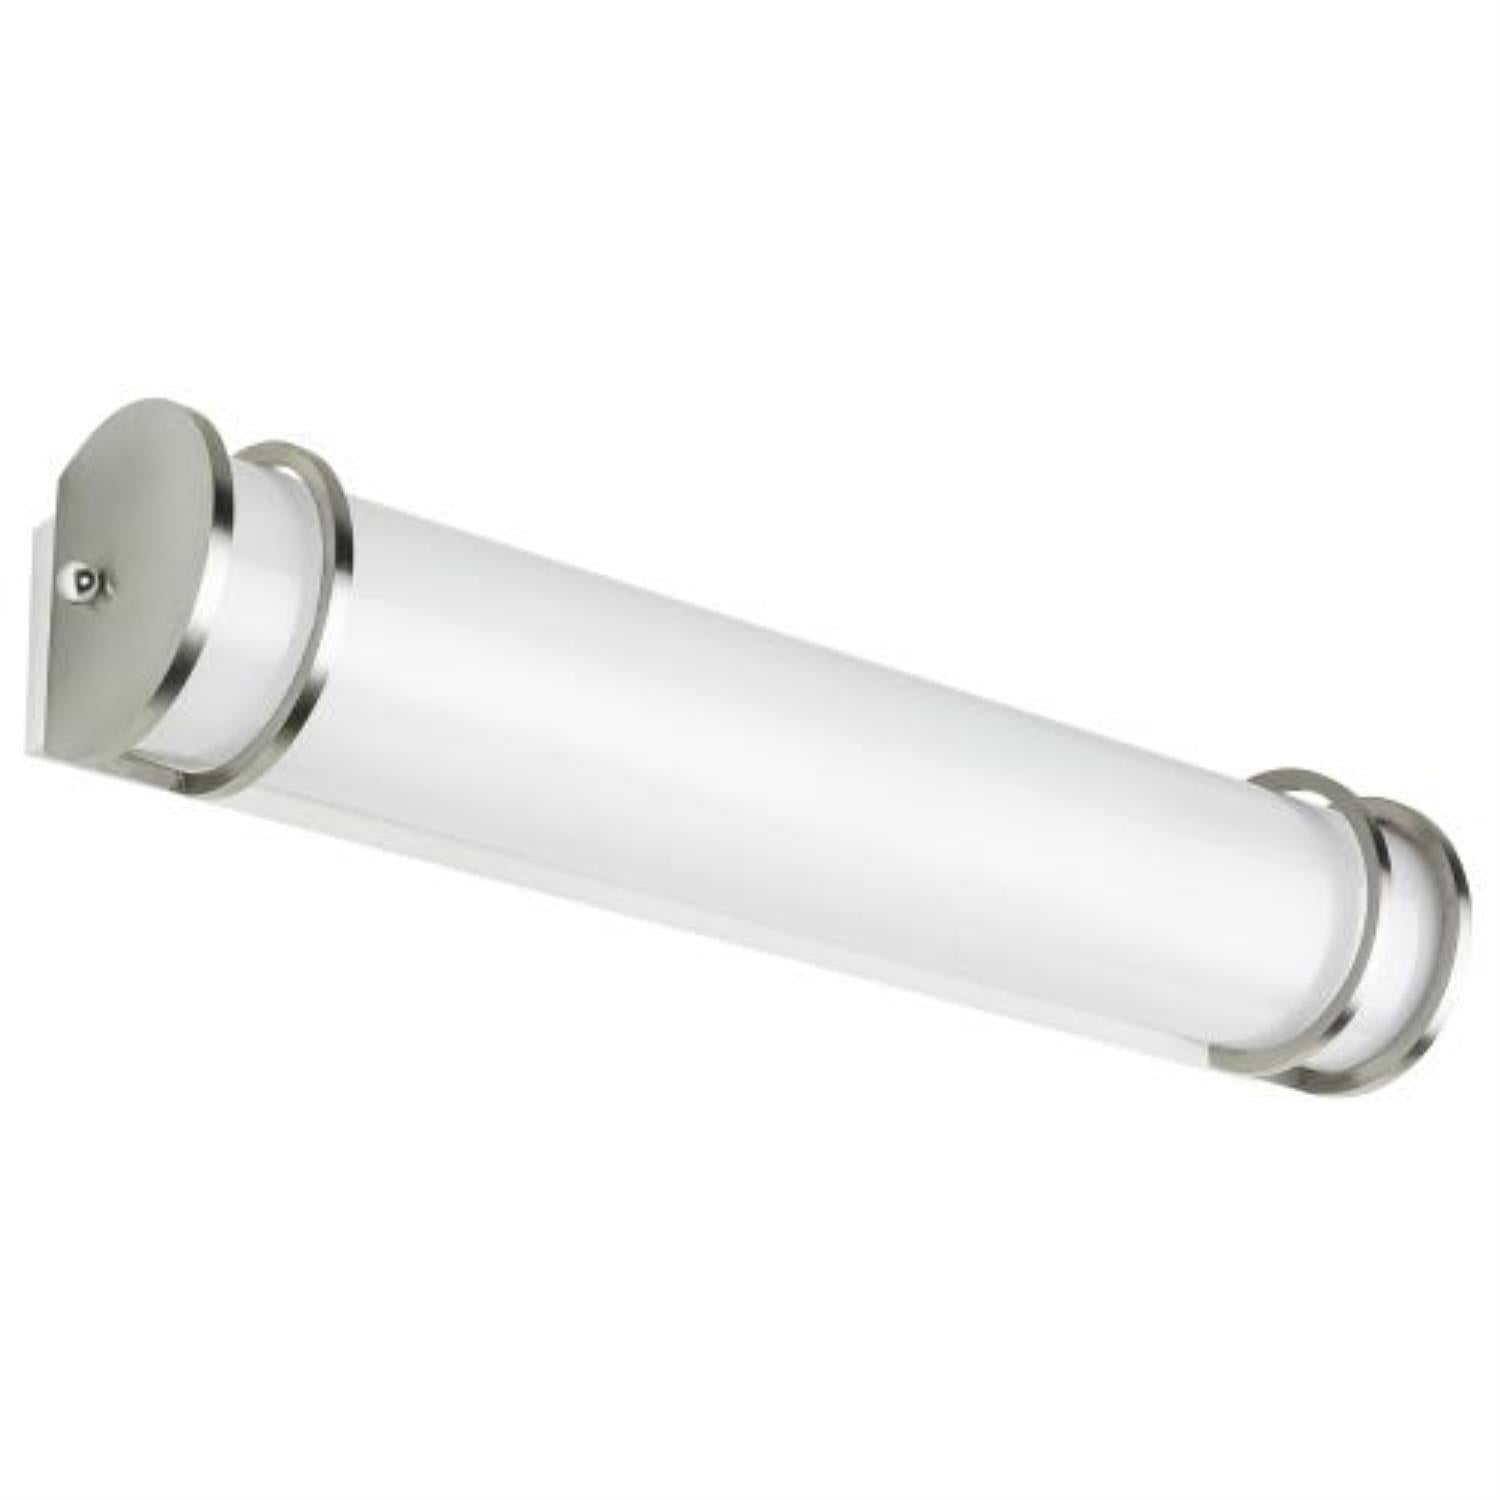 SUNLITE 36W 36in. LED Half-Cylinder Vanity Light Fixture Dimmable 3000K Warm White